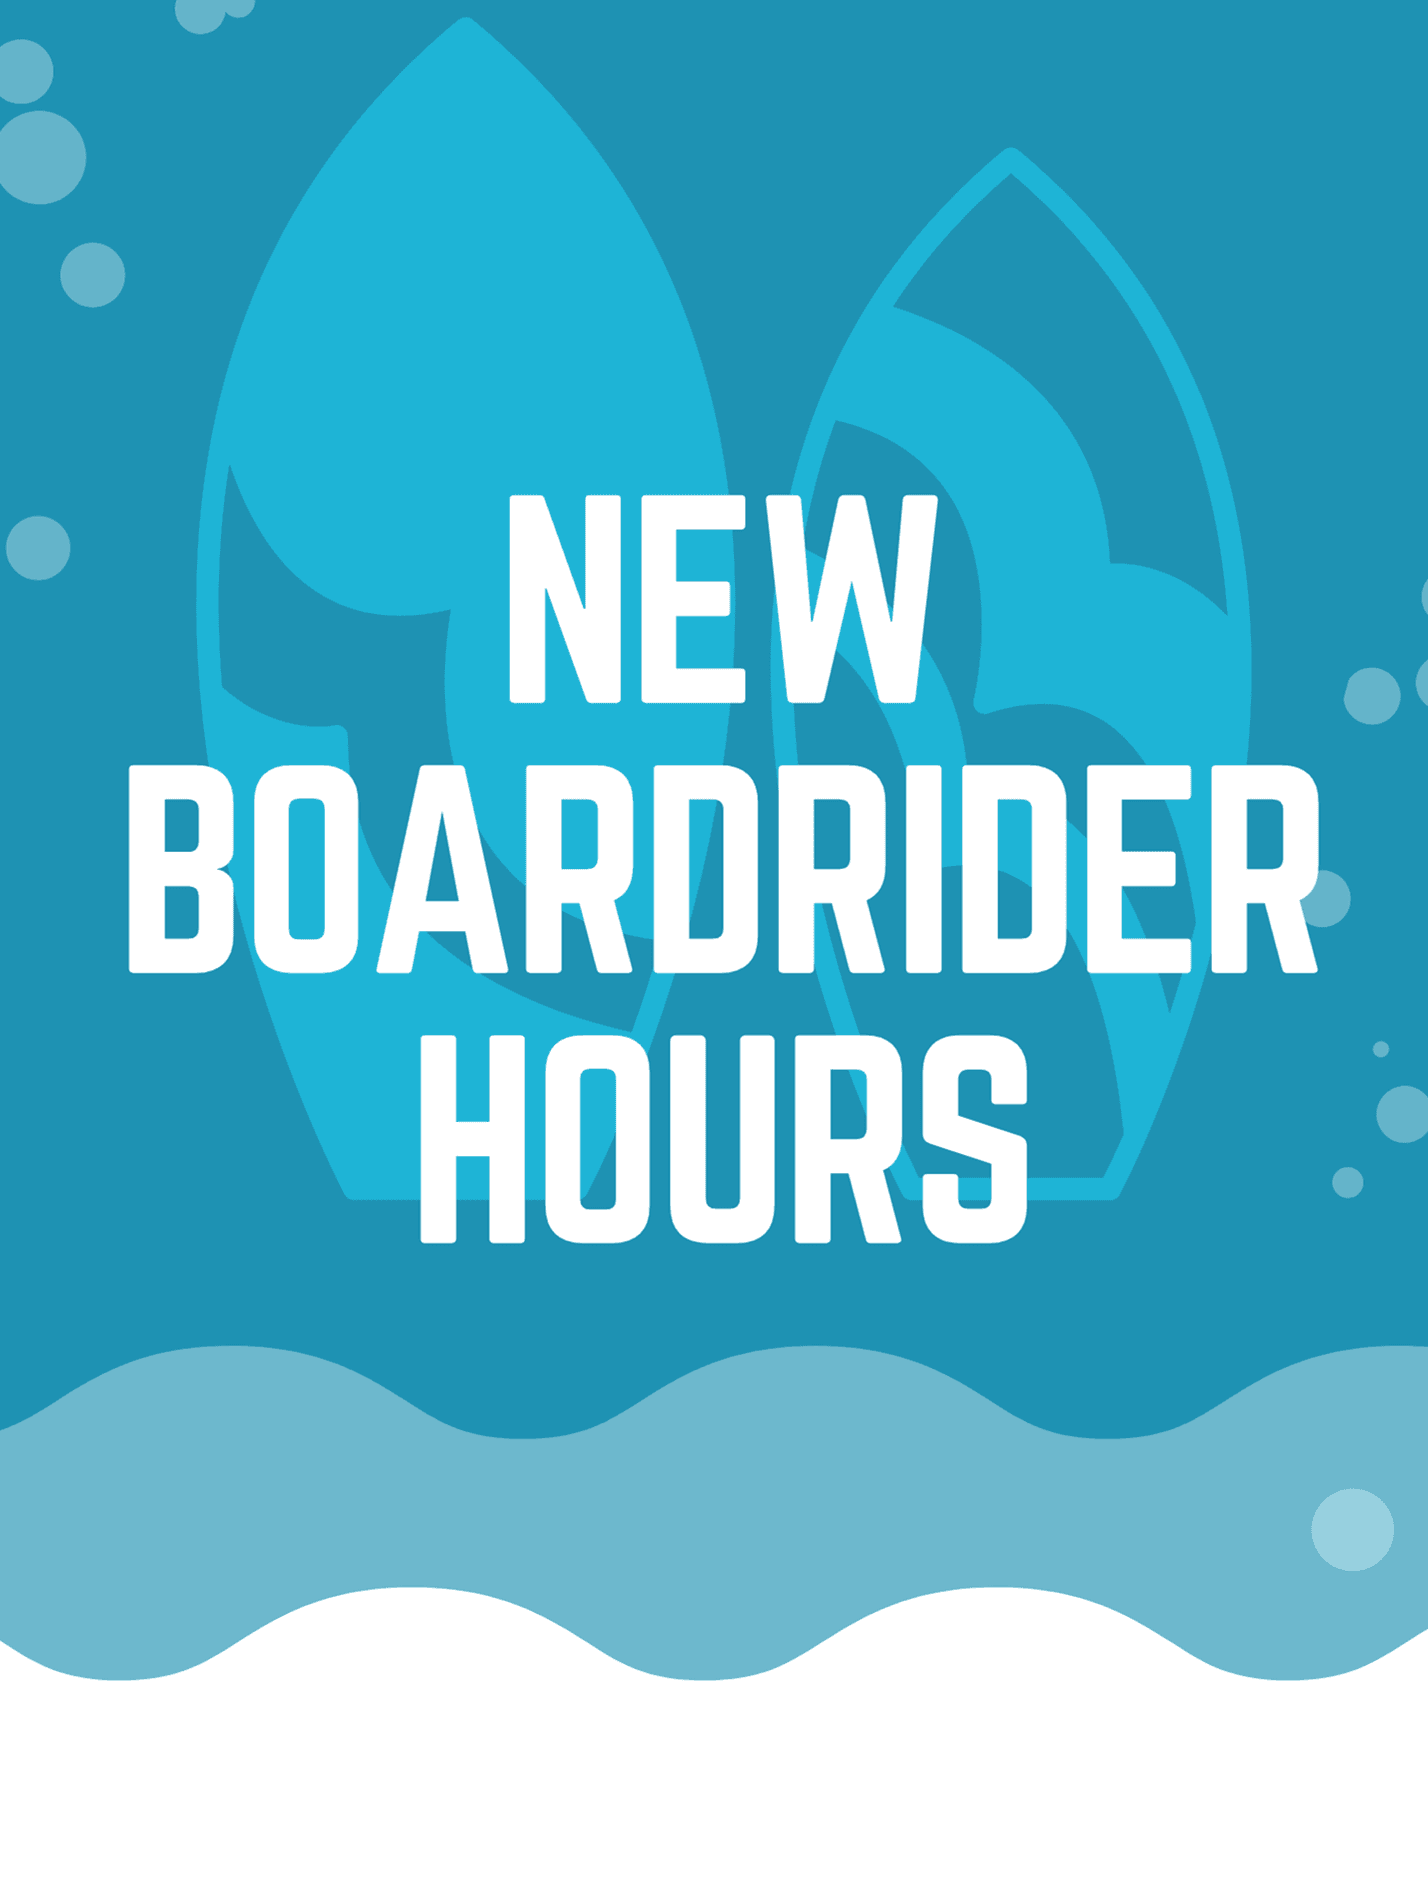 BoardRider Website